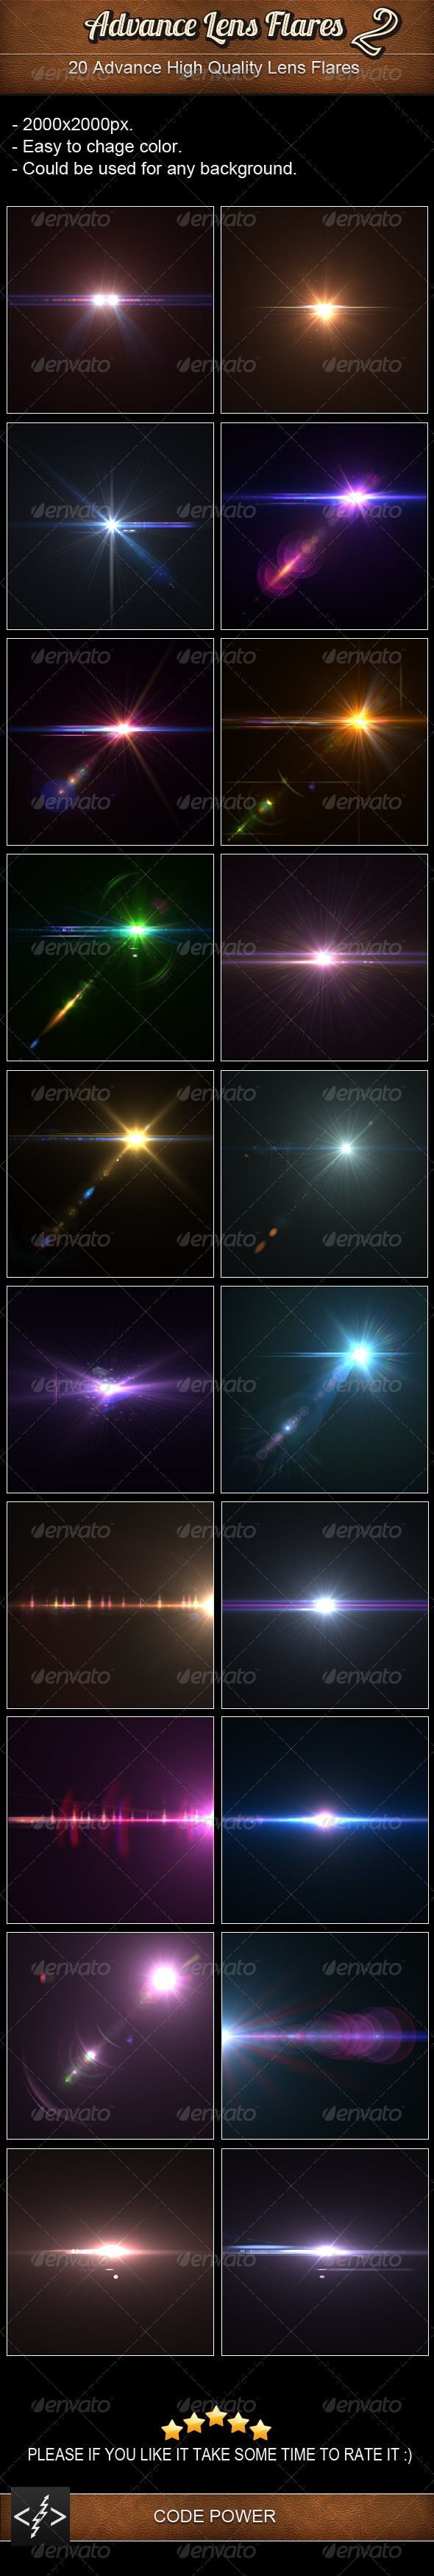 Advance Lens Flares 2  - You can download this awesome pin here : http://graphicriver.net/item/advance-lens-flares-2/3395485?sso?WT.ac=search_item_1=search_item_author=CodePower